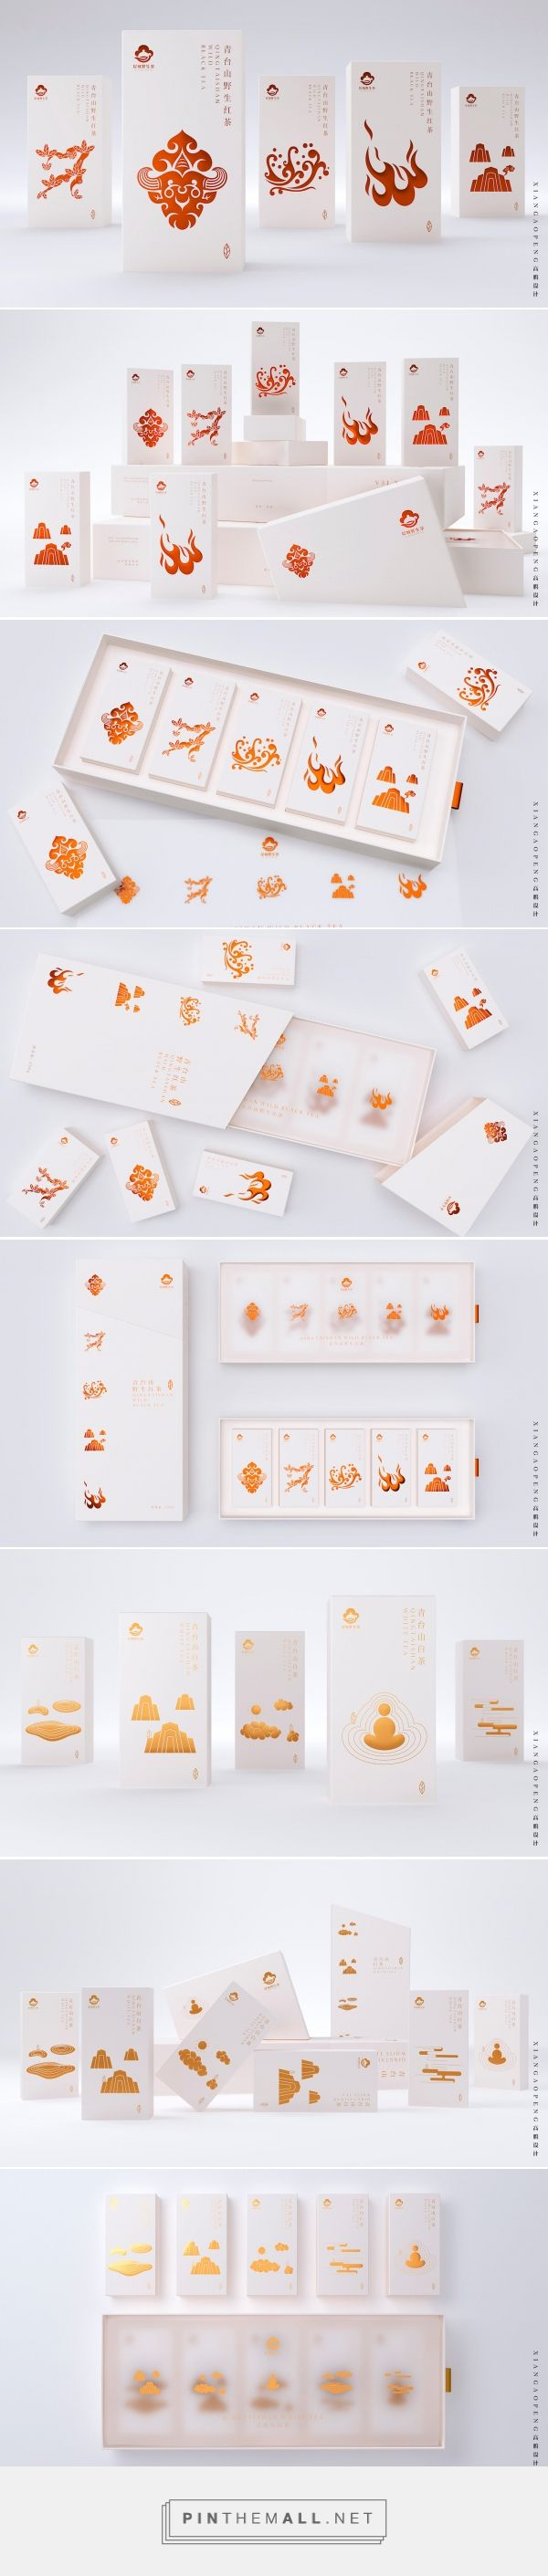 犀城野生茶 tea packaging design by Xiangaopeng. Source: xiangaopeng.com. Pin curated by #SFields99 #packaging #design #inspiration #ideas #innovation #creative #product #consumer #box #tea #beverages #cutout #minimalist #color